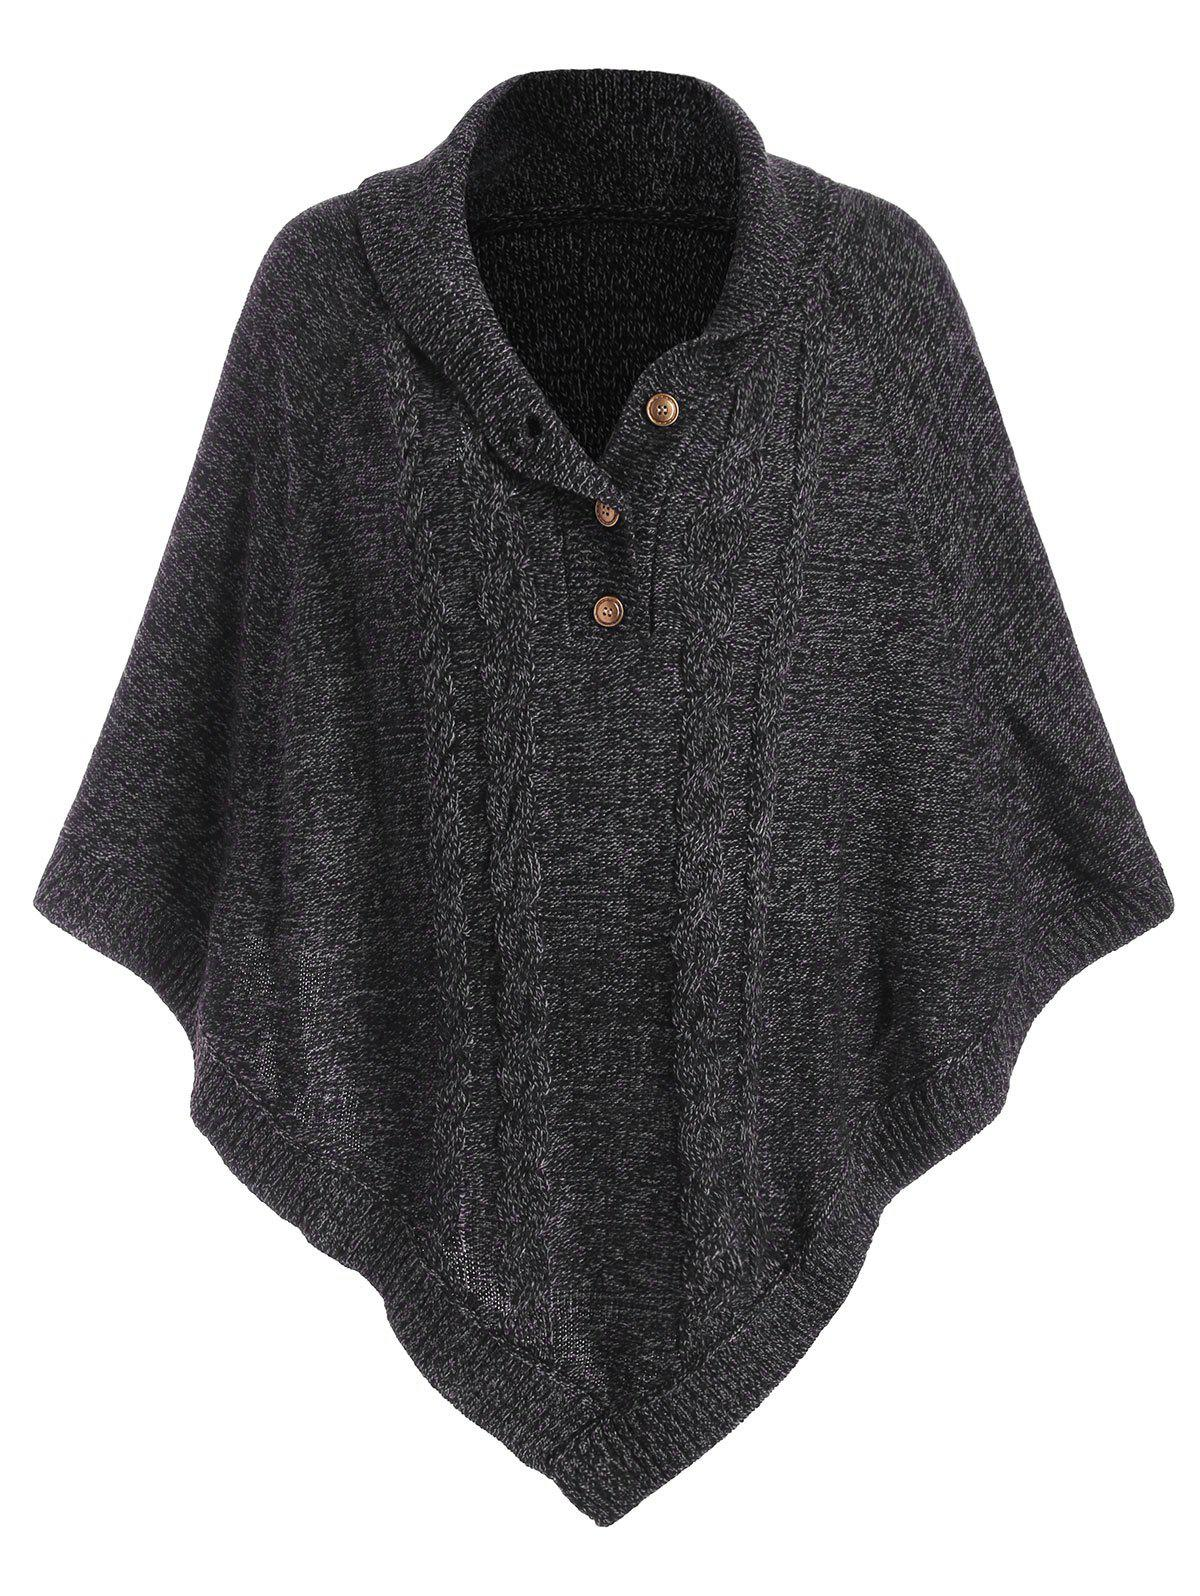 Shawl Collar Cable Knit Heathered Poncho Sweater - BLACK ONE SIZE